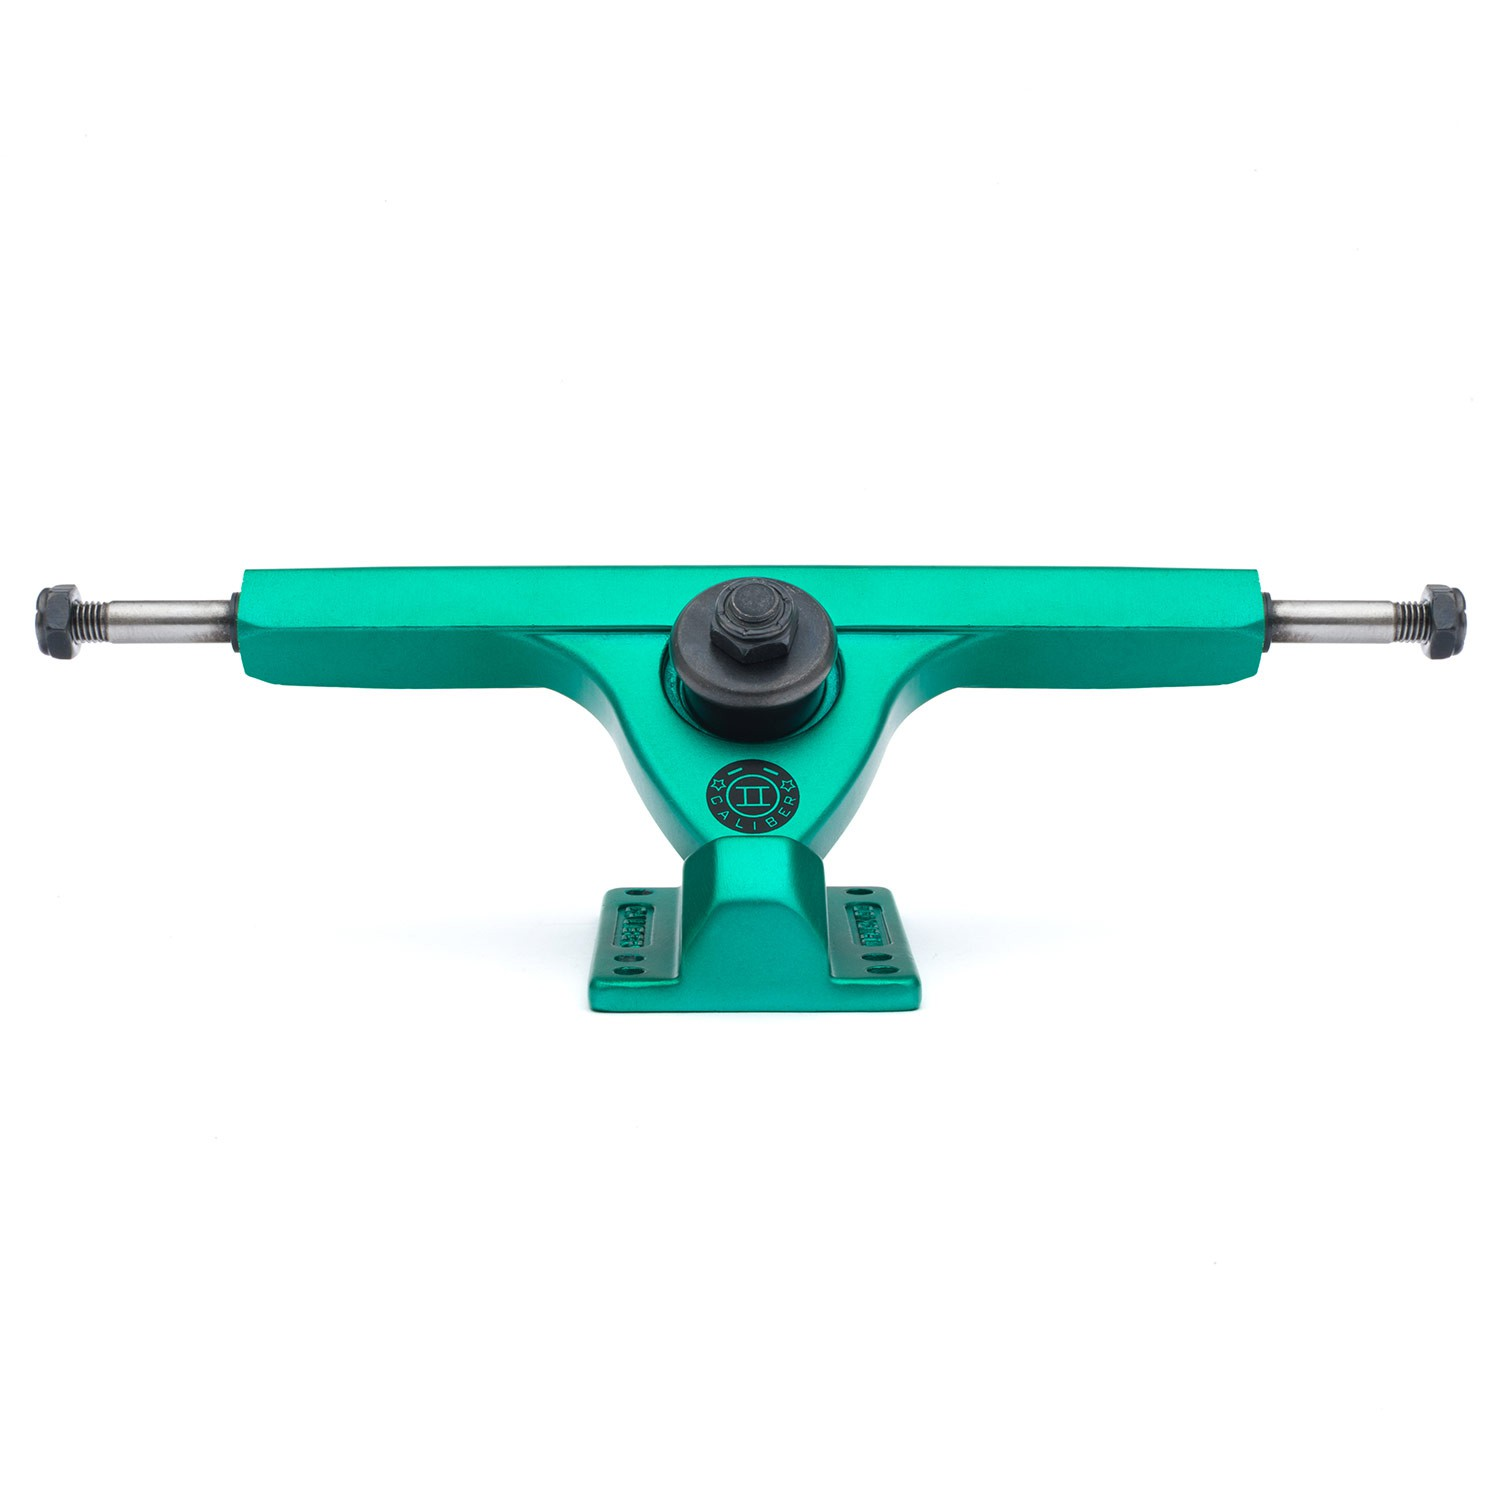 Longboard truck Caliber Caliber II 184mm 44° - midnight satin green - longboard treky